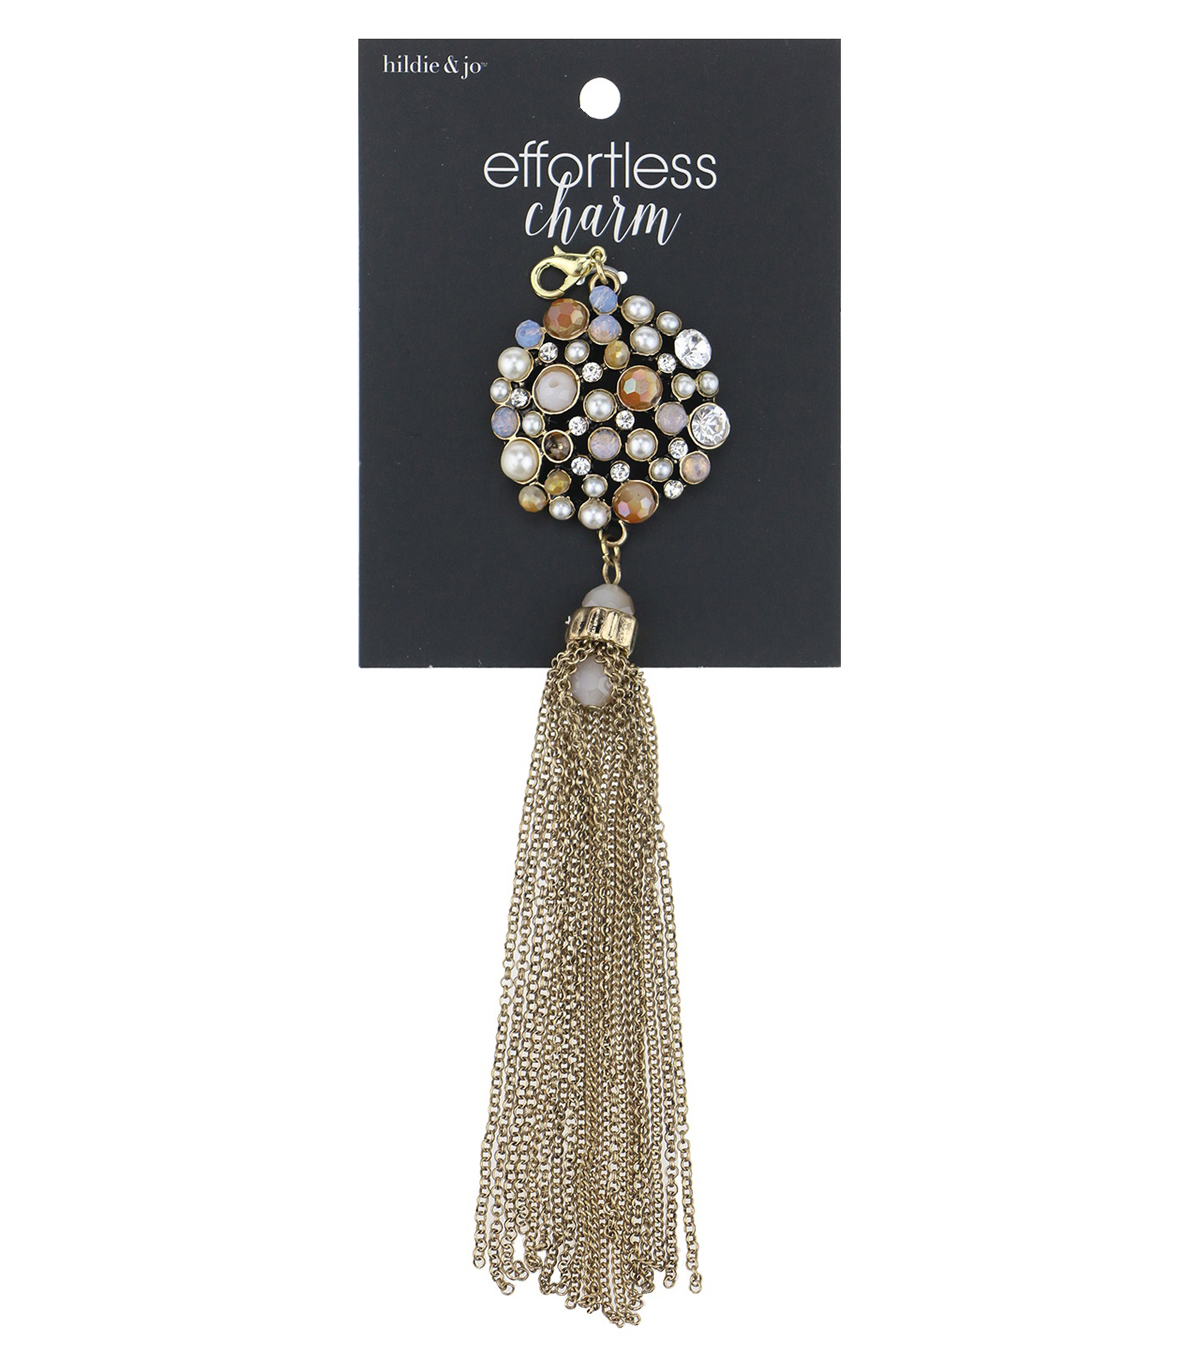 hildie & jo™ Effortless Charm Gold Tassel-Multi Beads